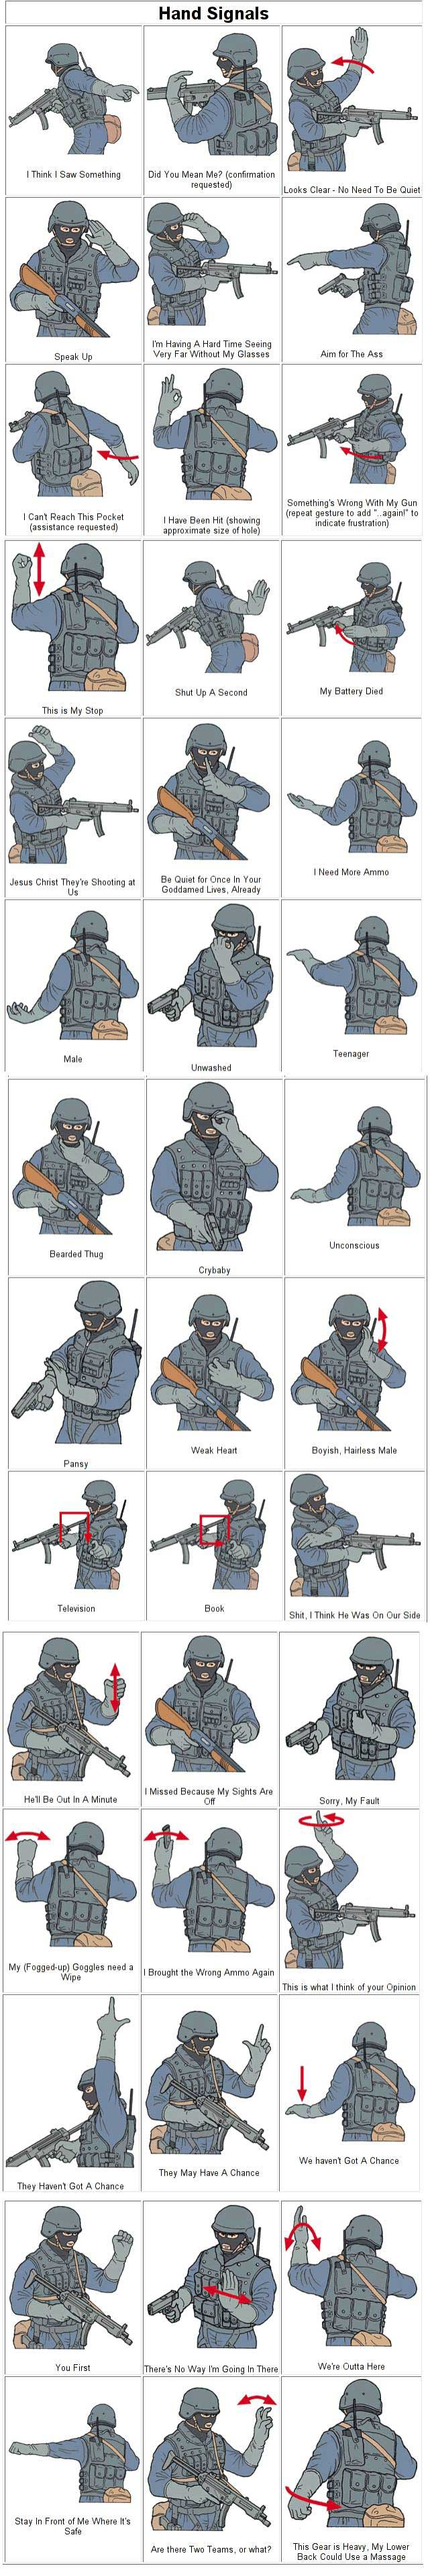 Hand Signals picture